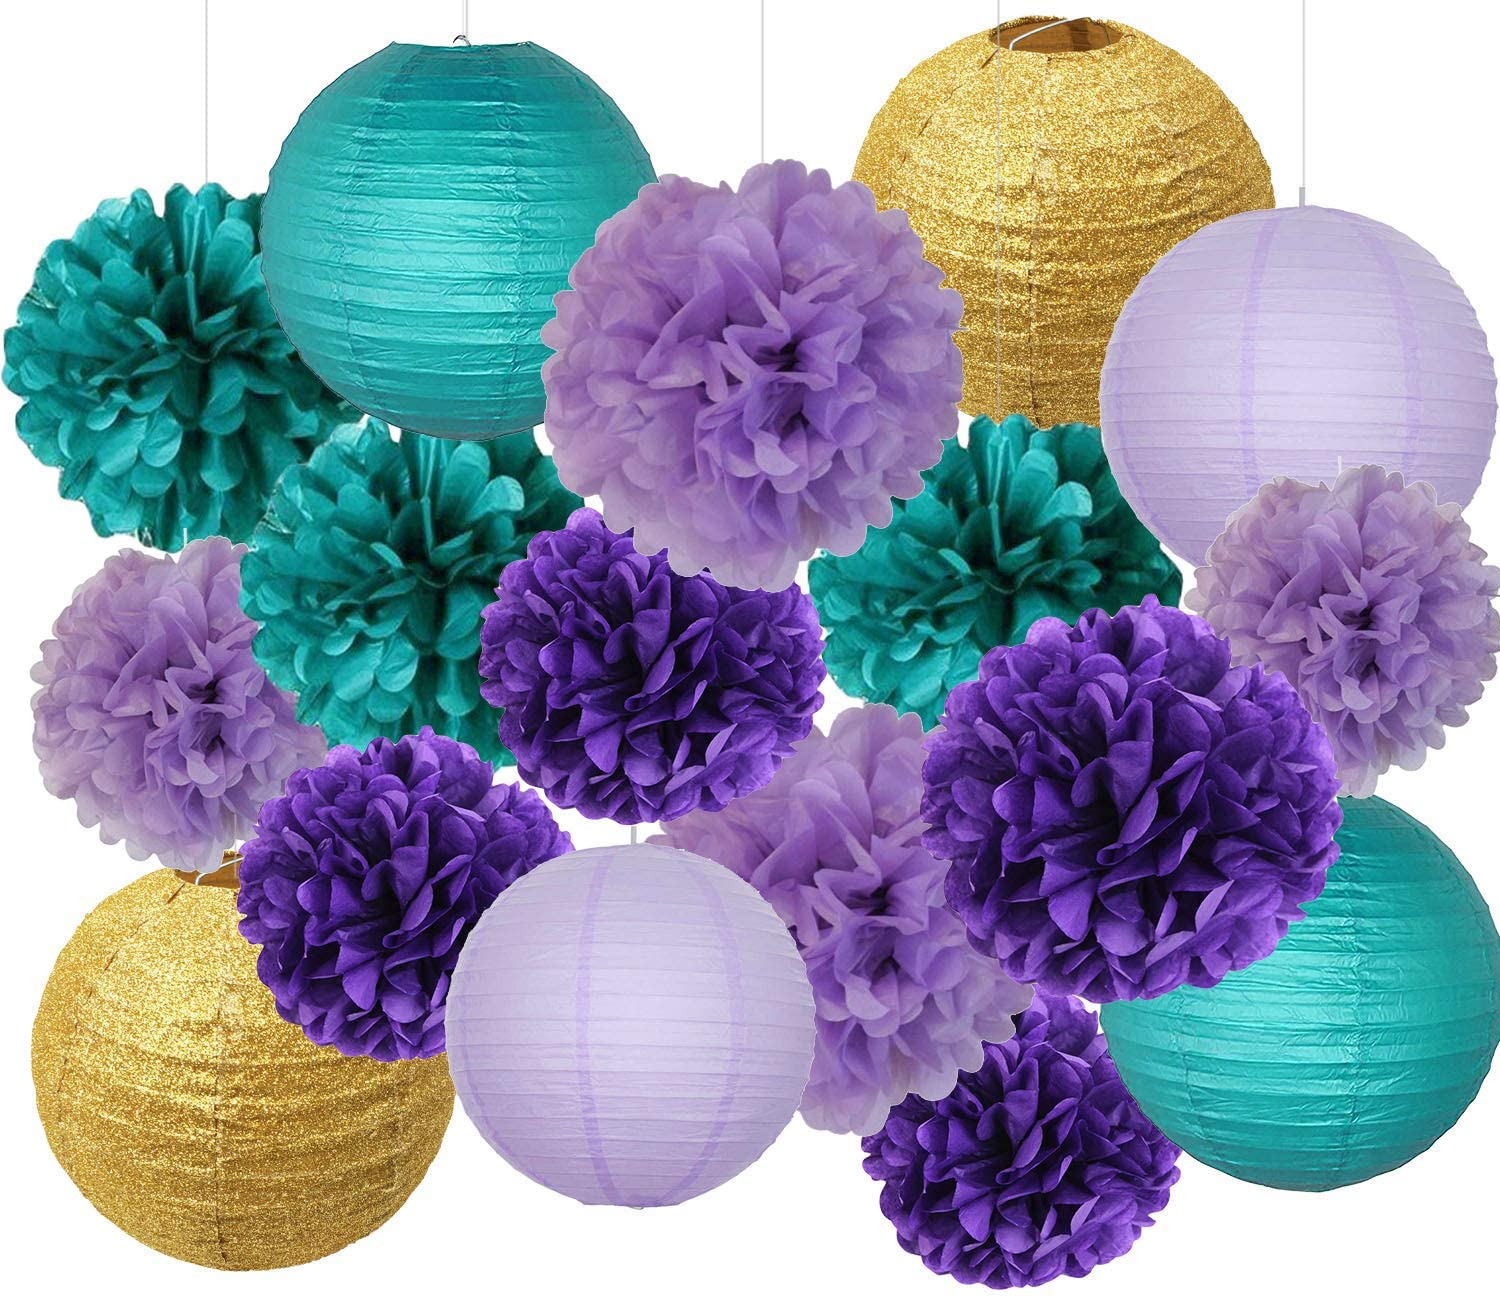 Furuix Under The Sea Party Decorations/Mermaid Party Supplies 18pcs Teal Lavender Purple 10inch 8inch Tissue Paper Pom Pom Paper Lanterns for Birthday Party Decor Baby Shower Decorations